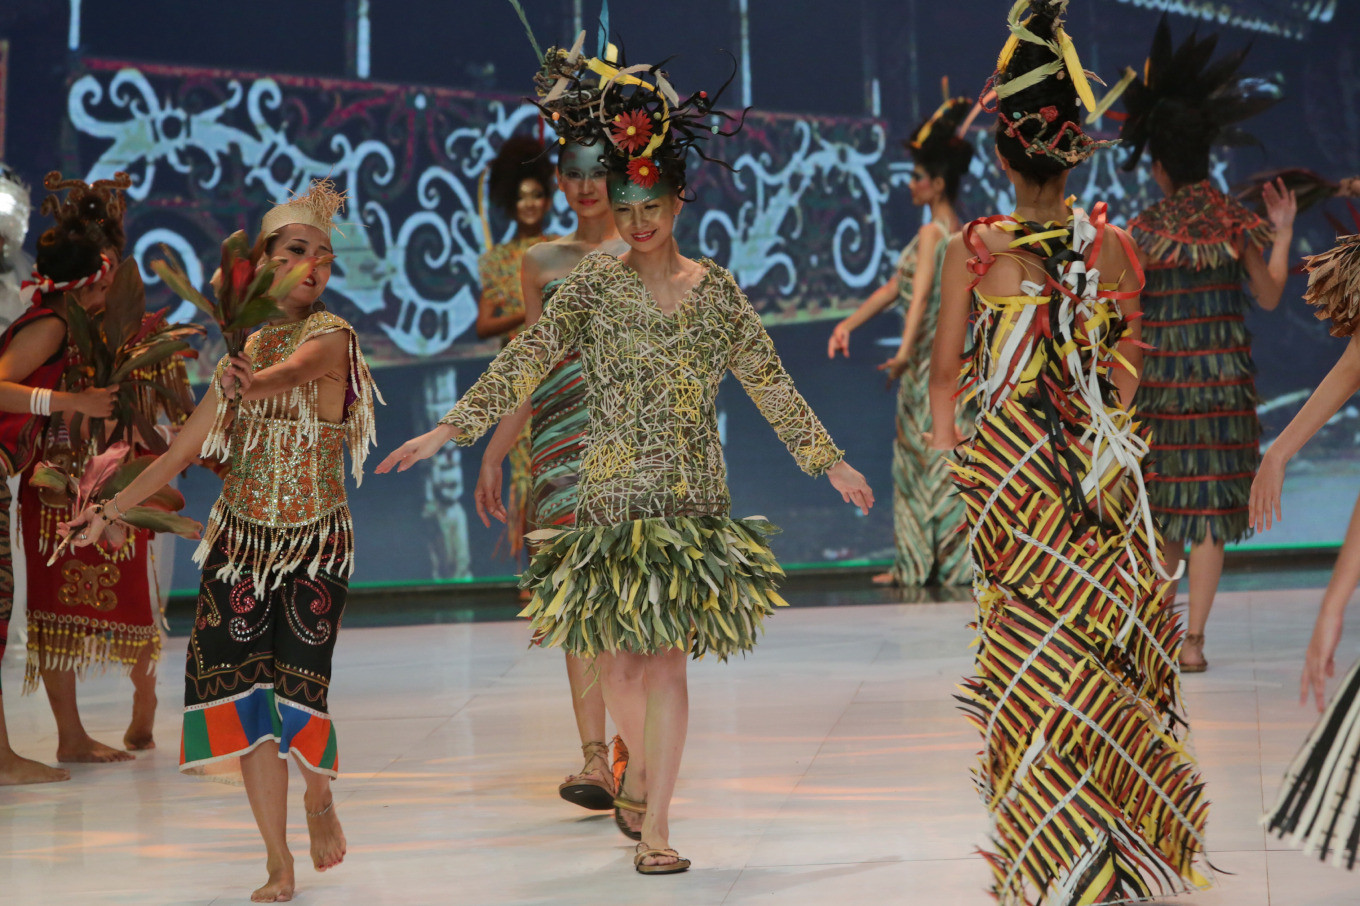 Models dance on the catwalk at Indonesia Fashion Week 2019 on Wednesday at the Jakarta Convention Center in Central Jakarta. Despite being made out of eco faux, the outfits are still comfortable for the models.